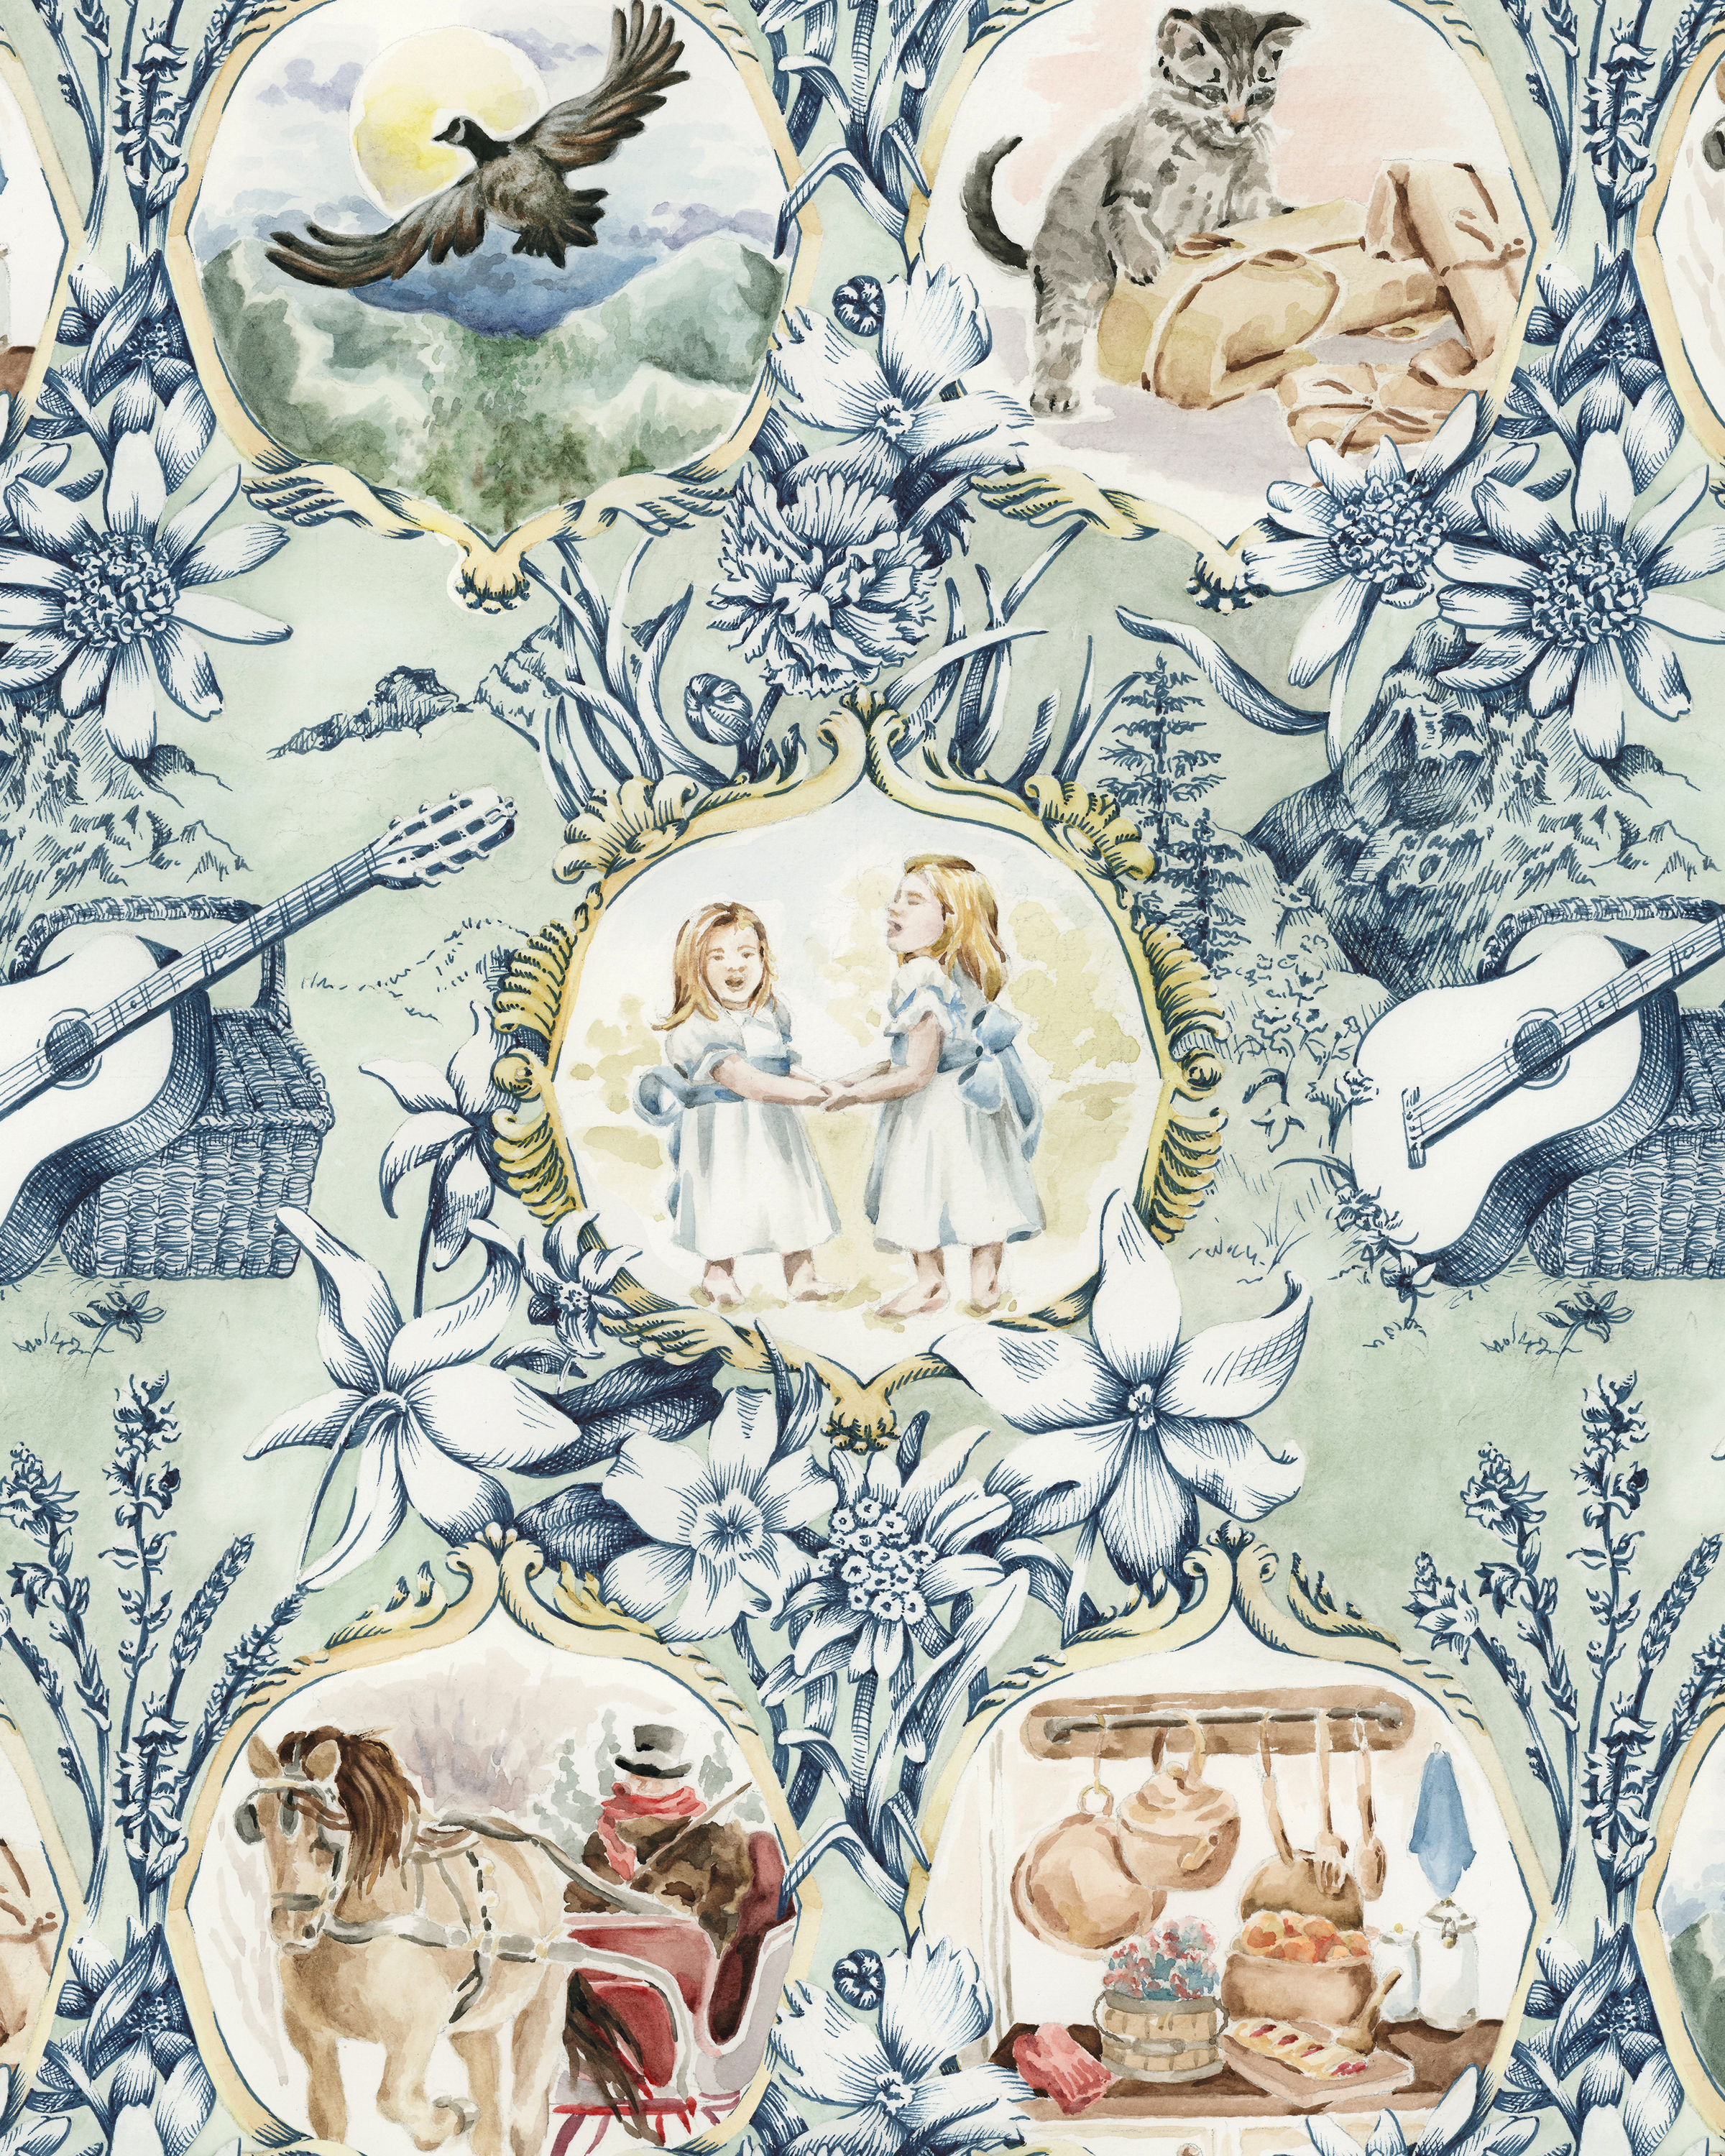 Sound of Music Toile Detail New.jpg